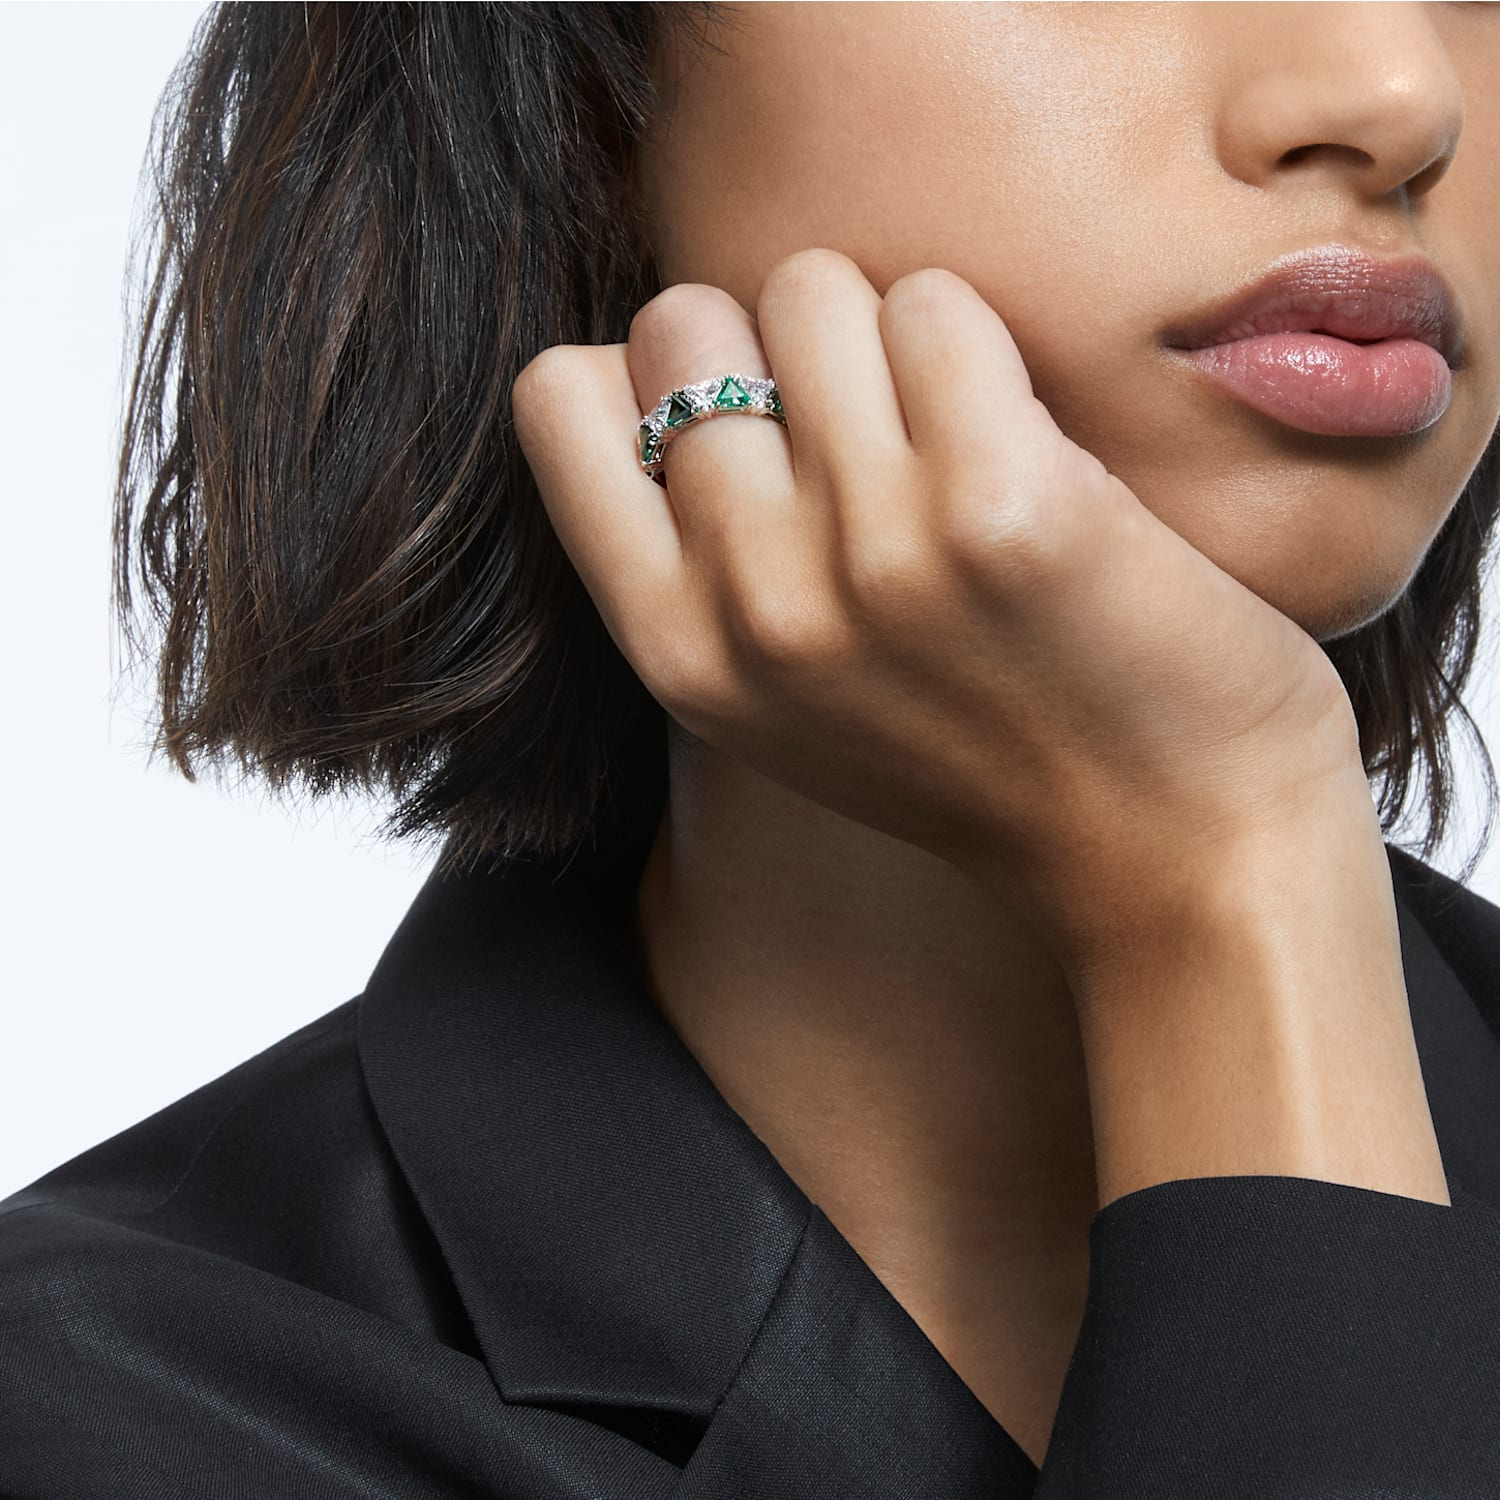 Details about  /Brilliant Top Grade Crystal Fashion Cocktail Black IP Ring TK2281